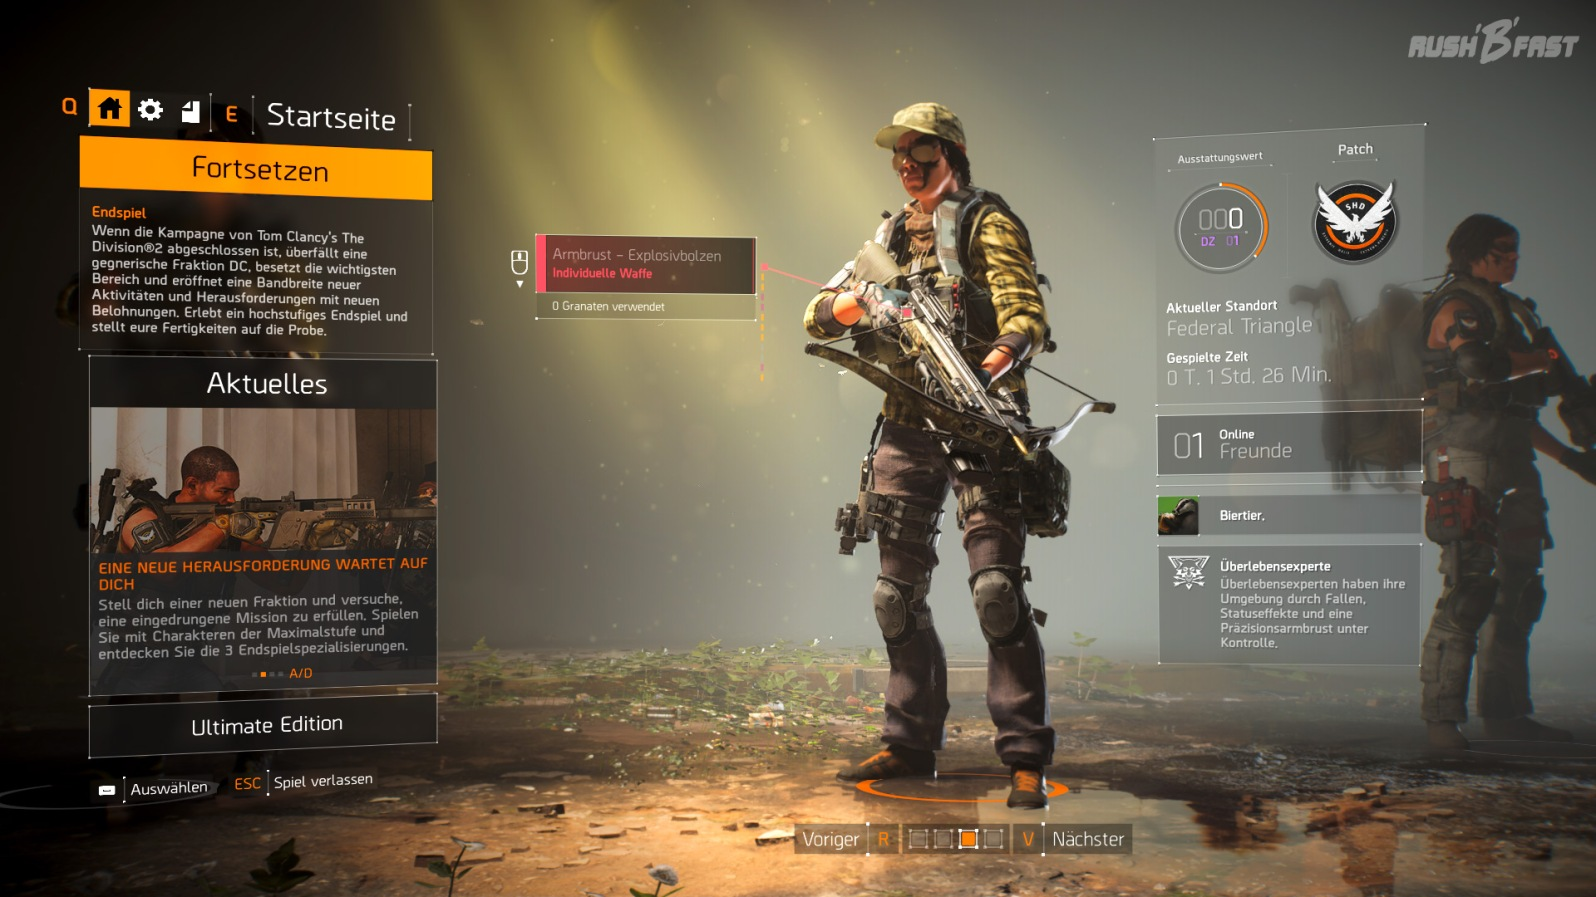 Tom Clancy's The Division 2 (CB) - Endgame-Charakter mit Highend-Armbrust als Spezialwaffe.